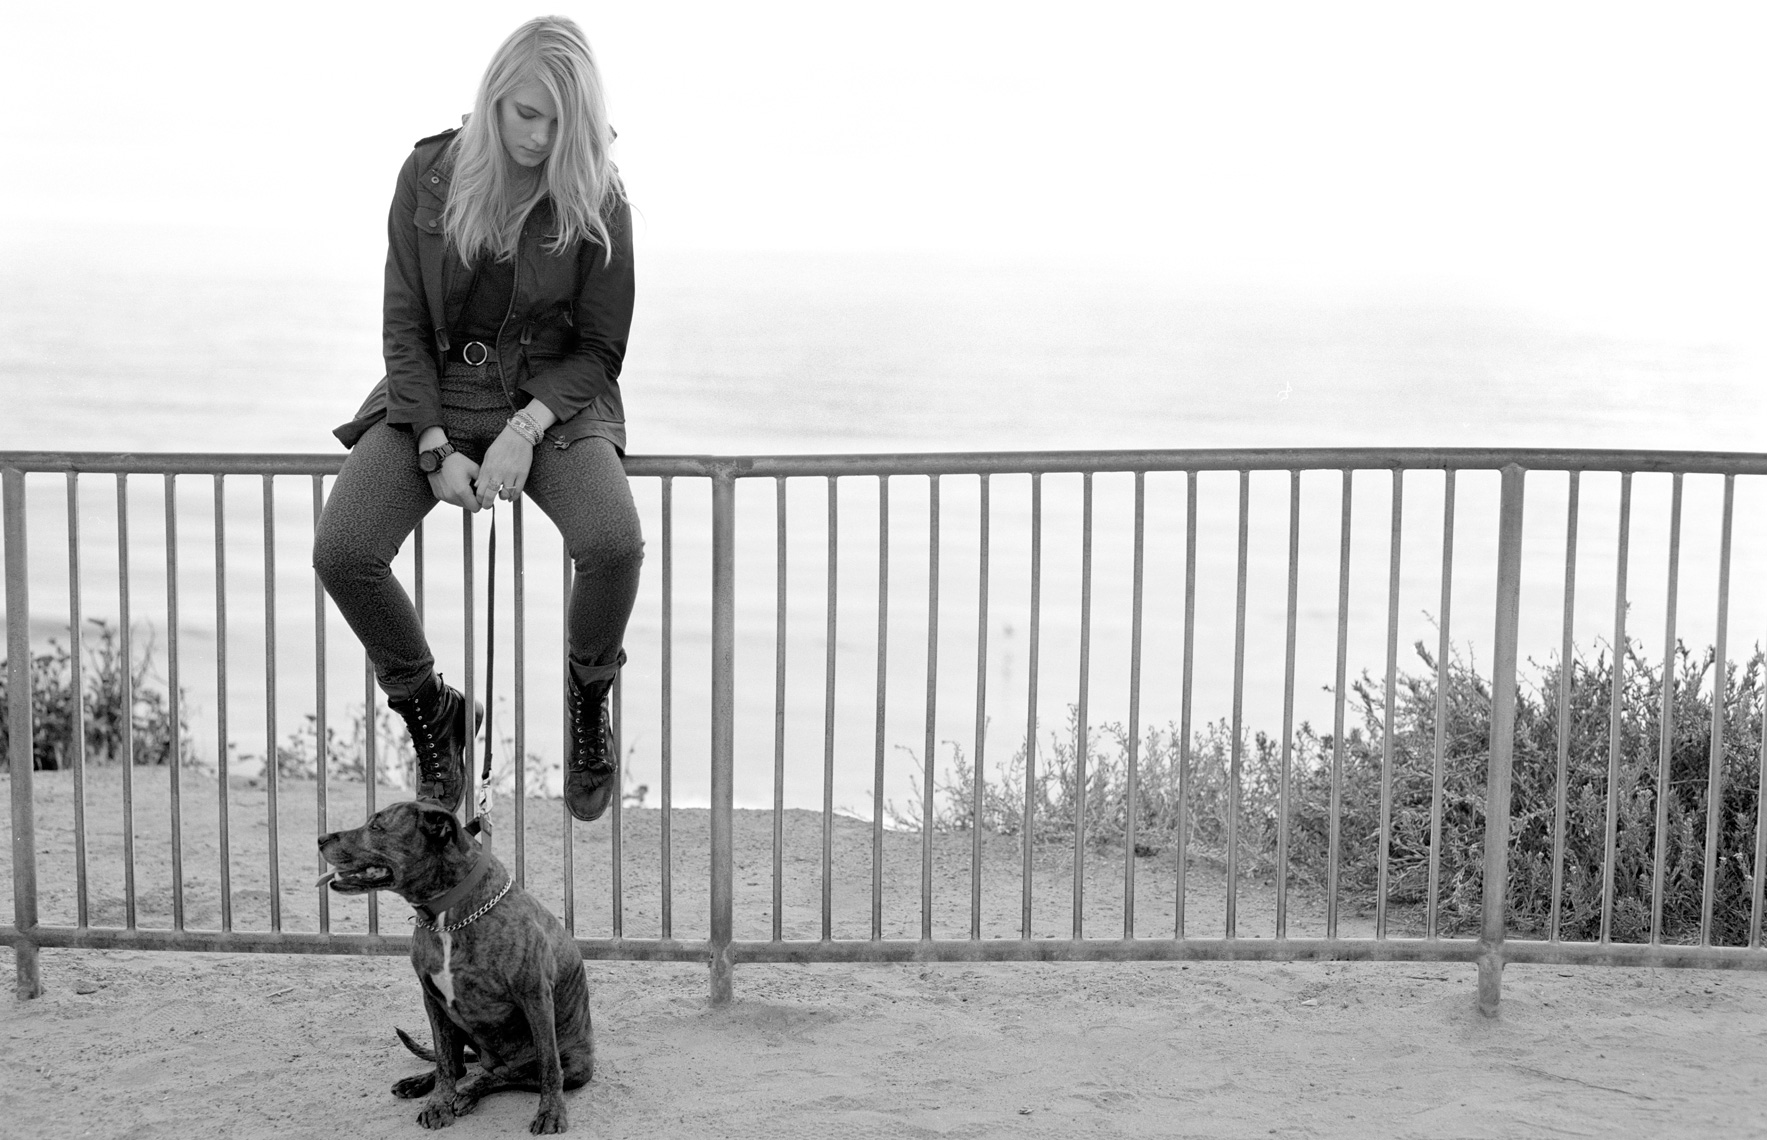 nixon-encinitas-149-2011-black-and-white-crop-edit.jpg